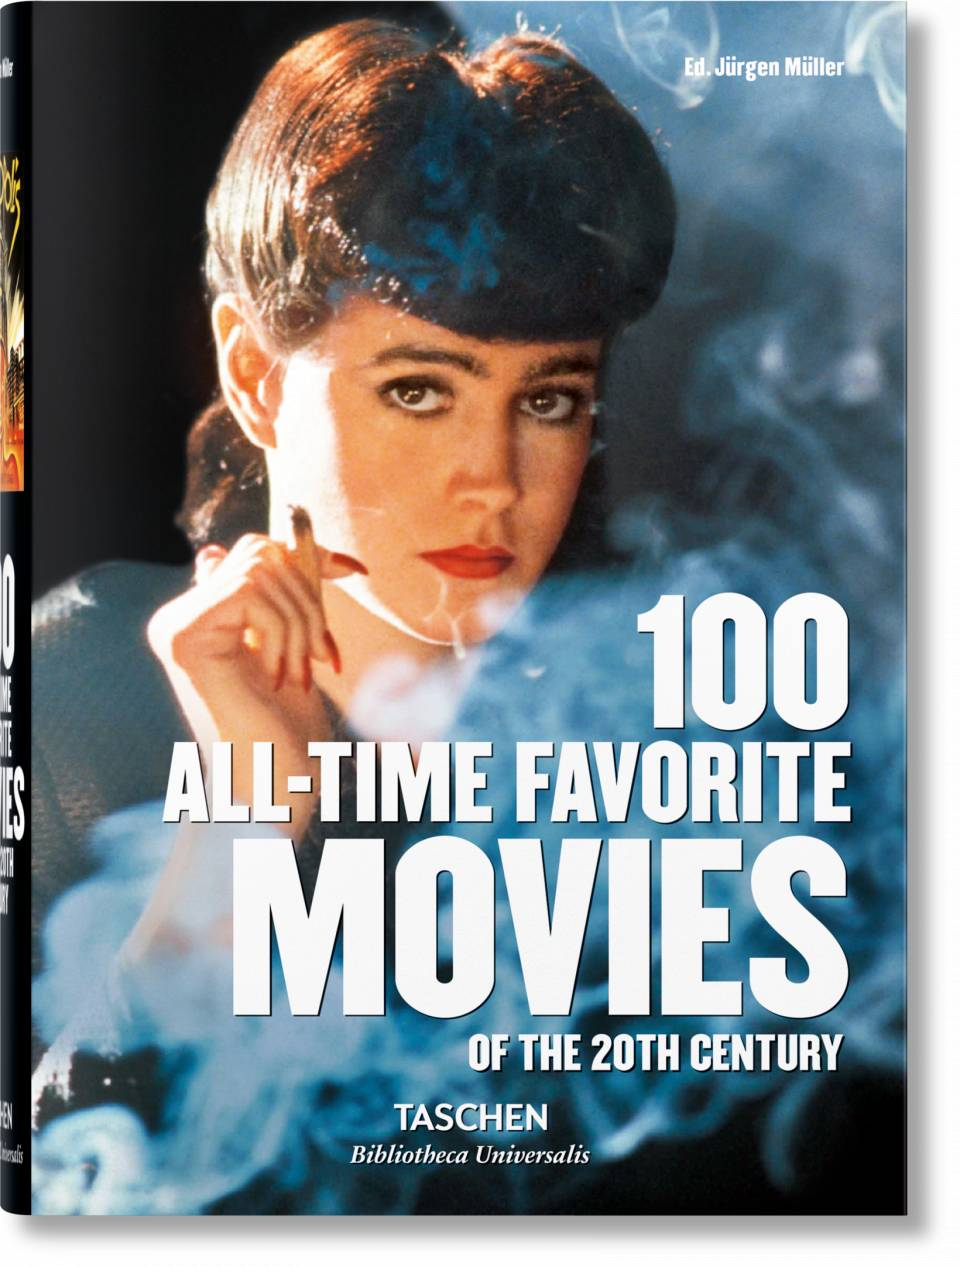 100 All-Time Favorite Movies of the 20th Century - image 1